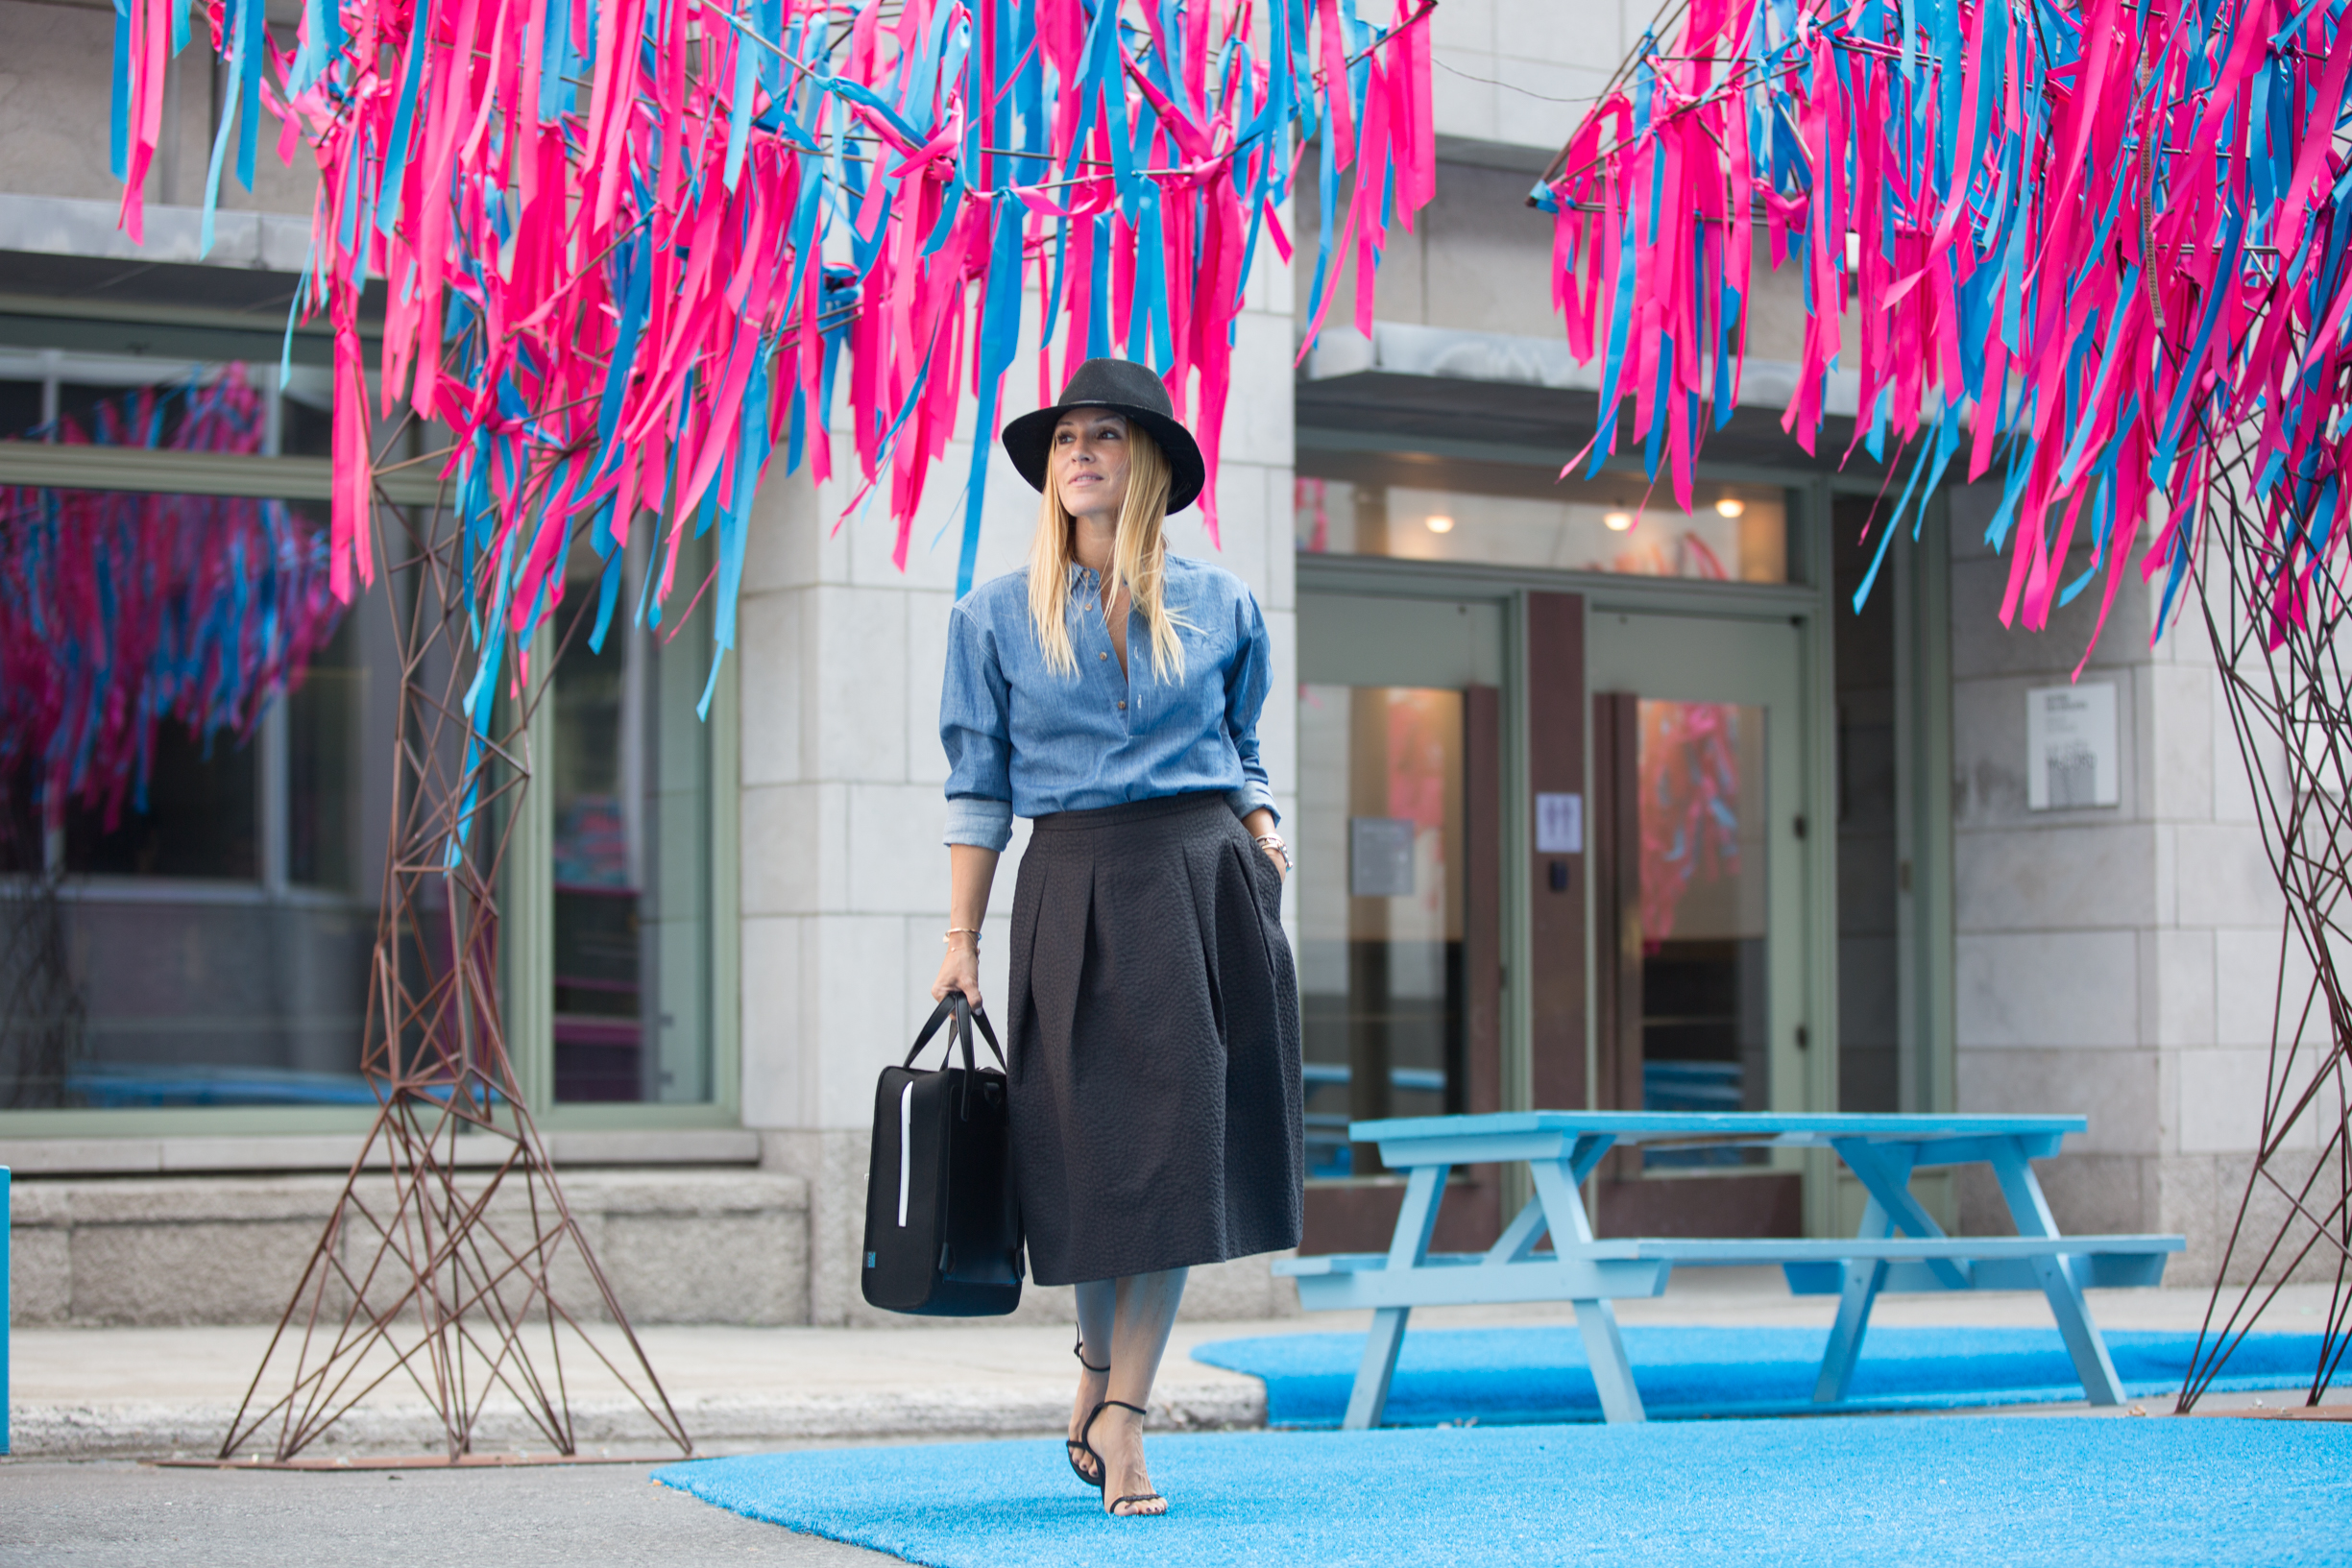 mademoiselle jules wearing a Publish denim shirt from Ben & Boule trading with a midi skirt and MRKTBAG and Stuart Weitzman nudist sandals